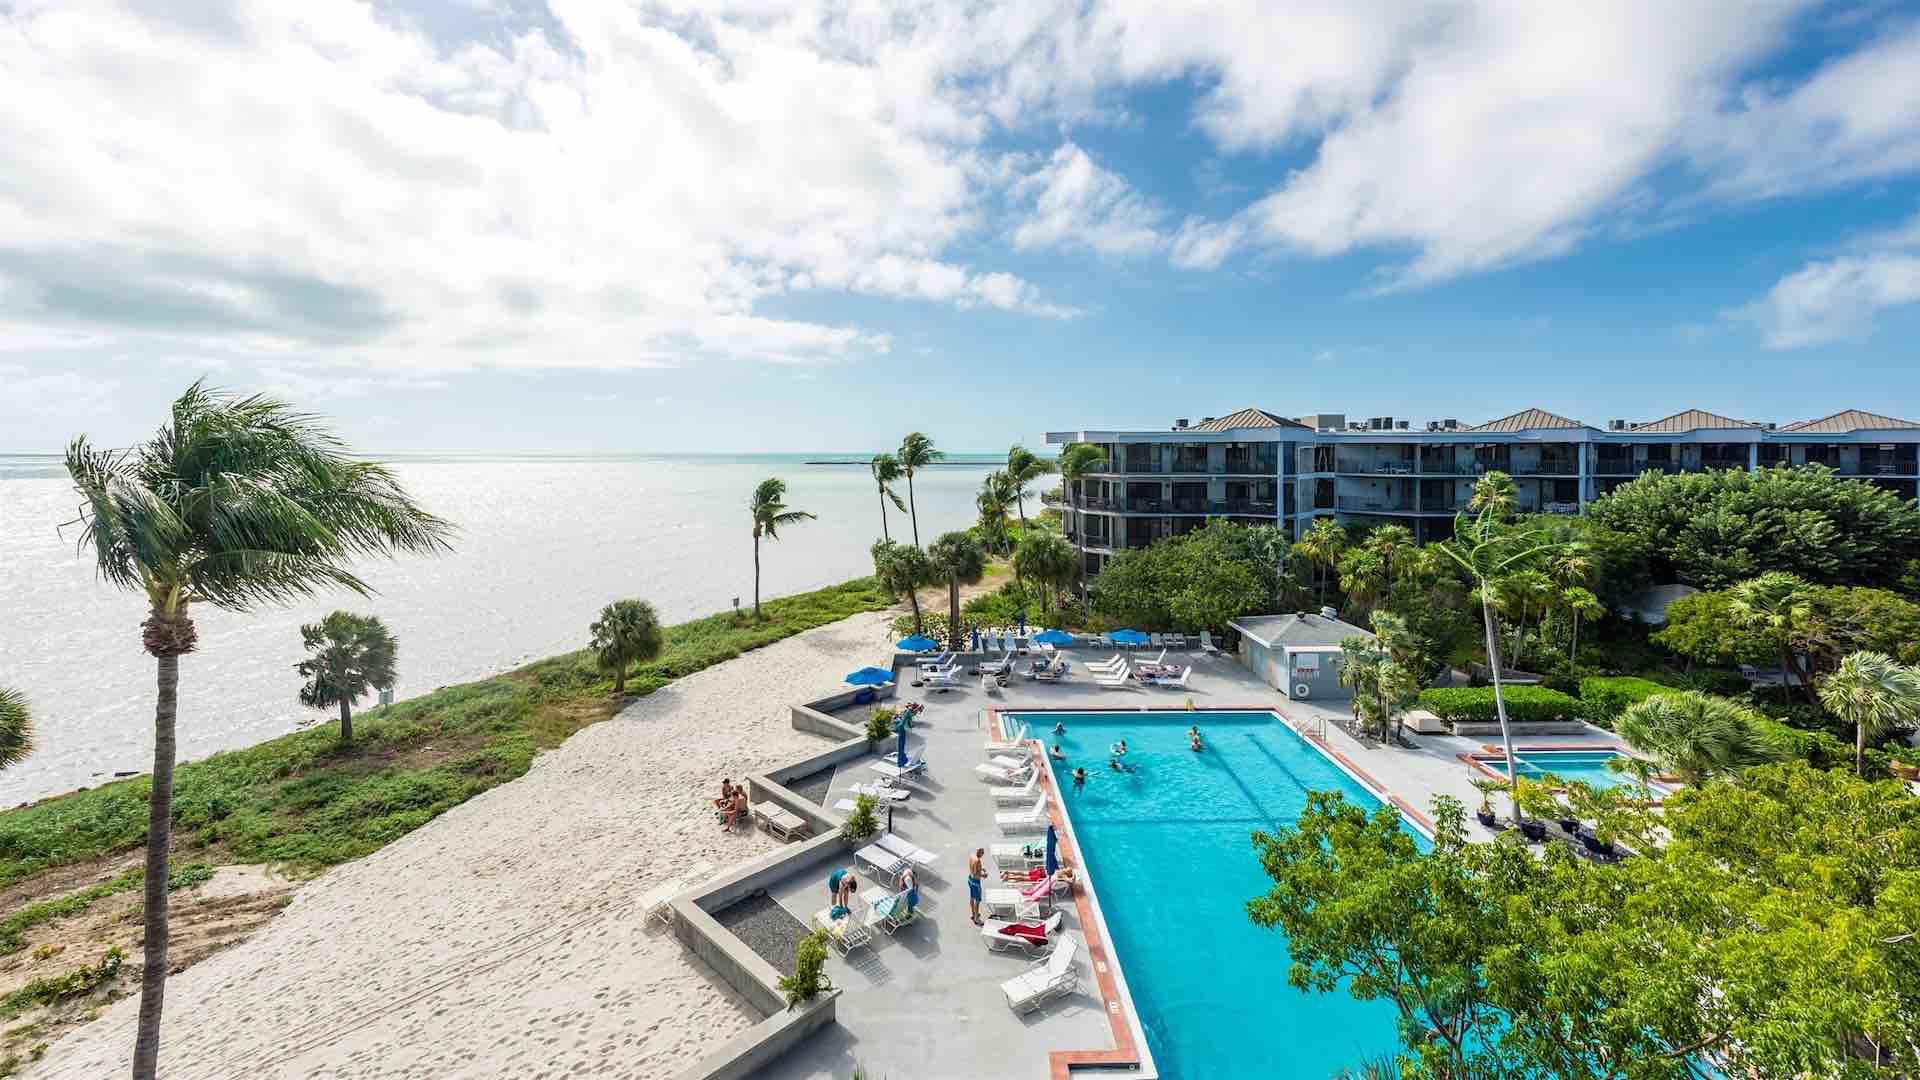 You'll have a front row view of the Community Pool and Ocean from the balcony...